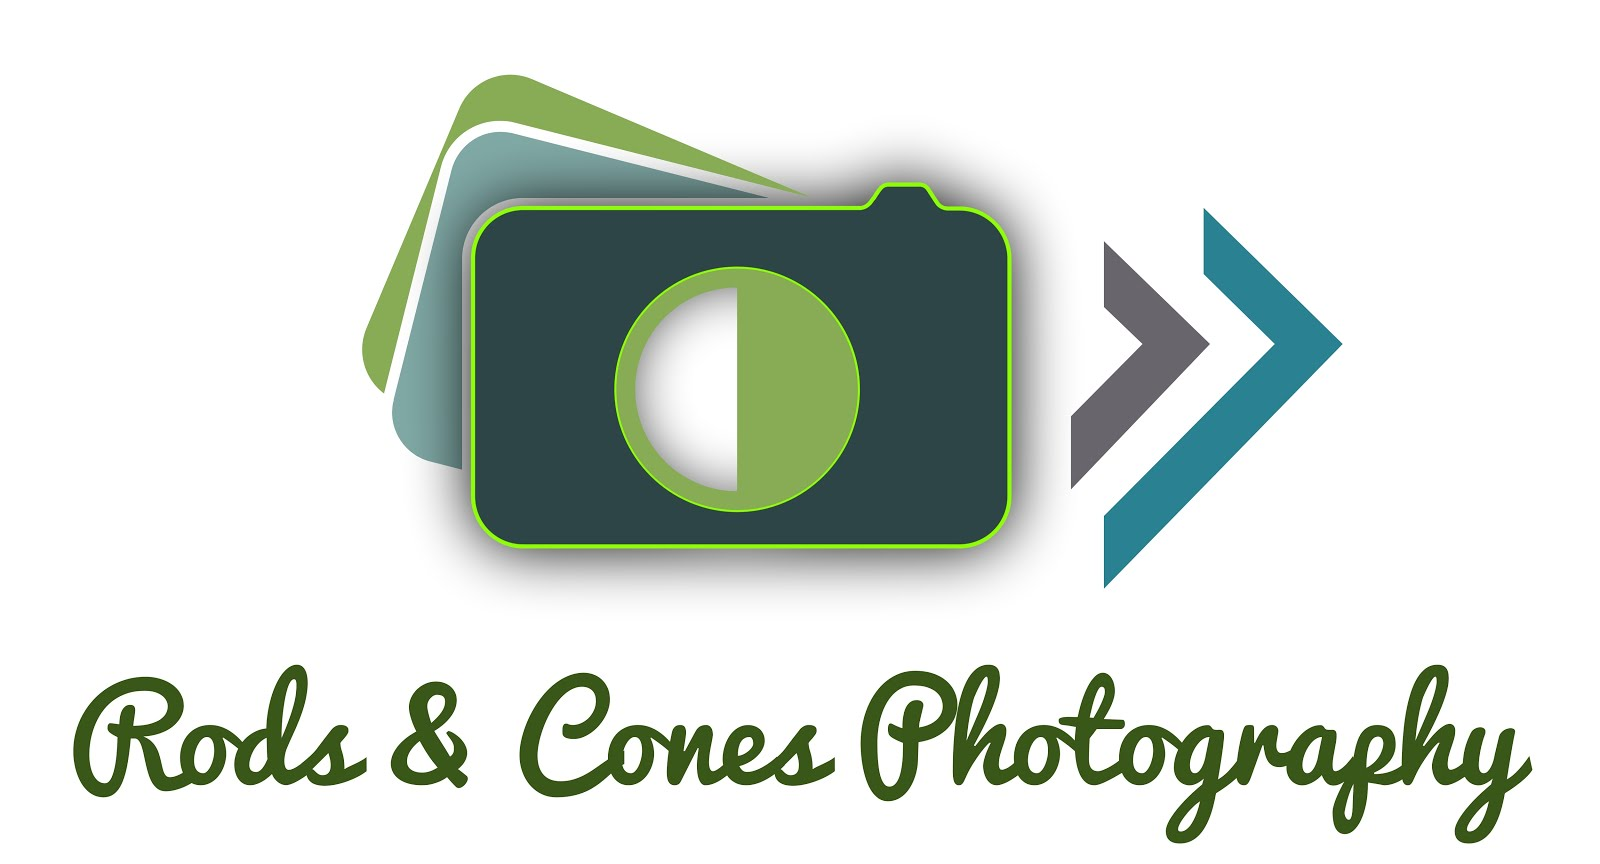 AFFORDABLE PHOTOGRAPHY AND VIDEOGRAPHY SERVICES